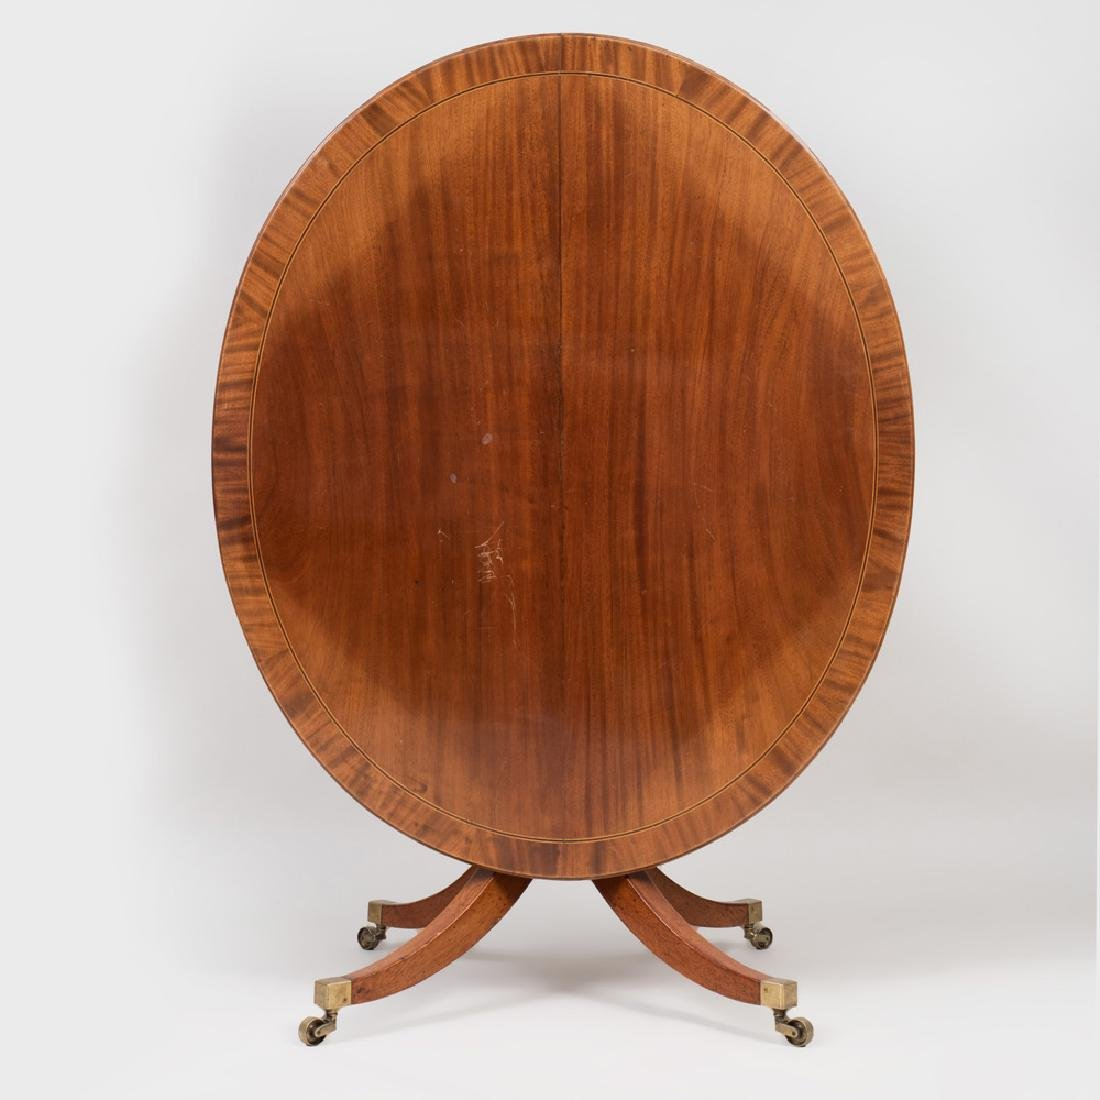 Regency Style Mahogany, Ebony and Boxwood Strung